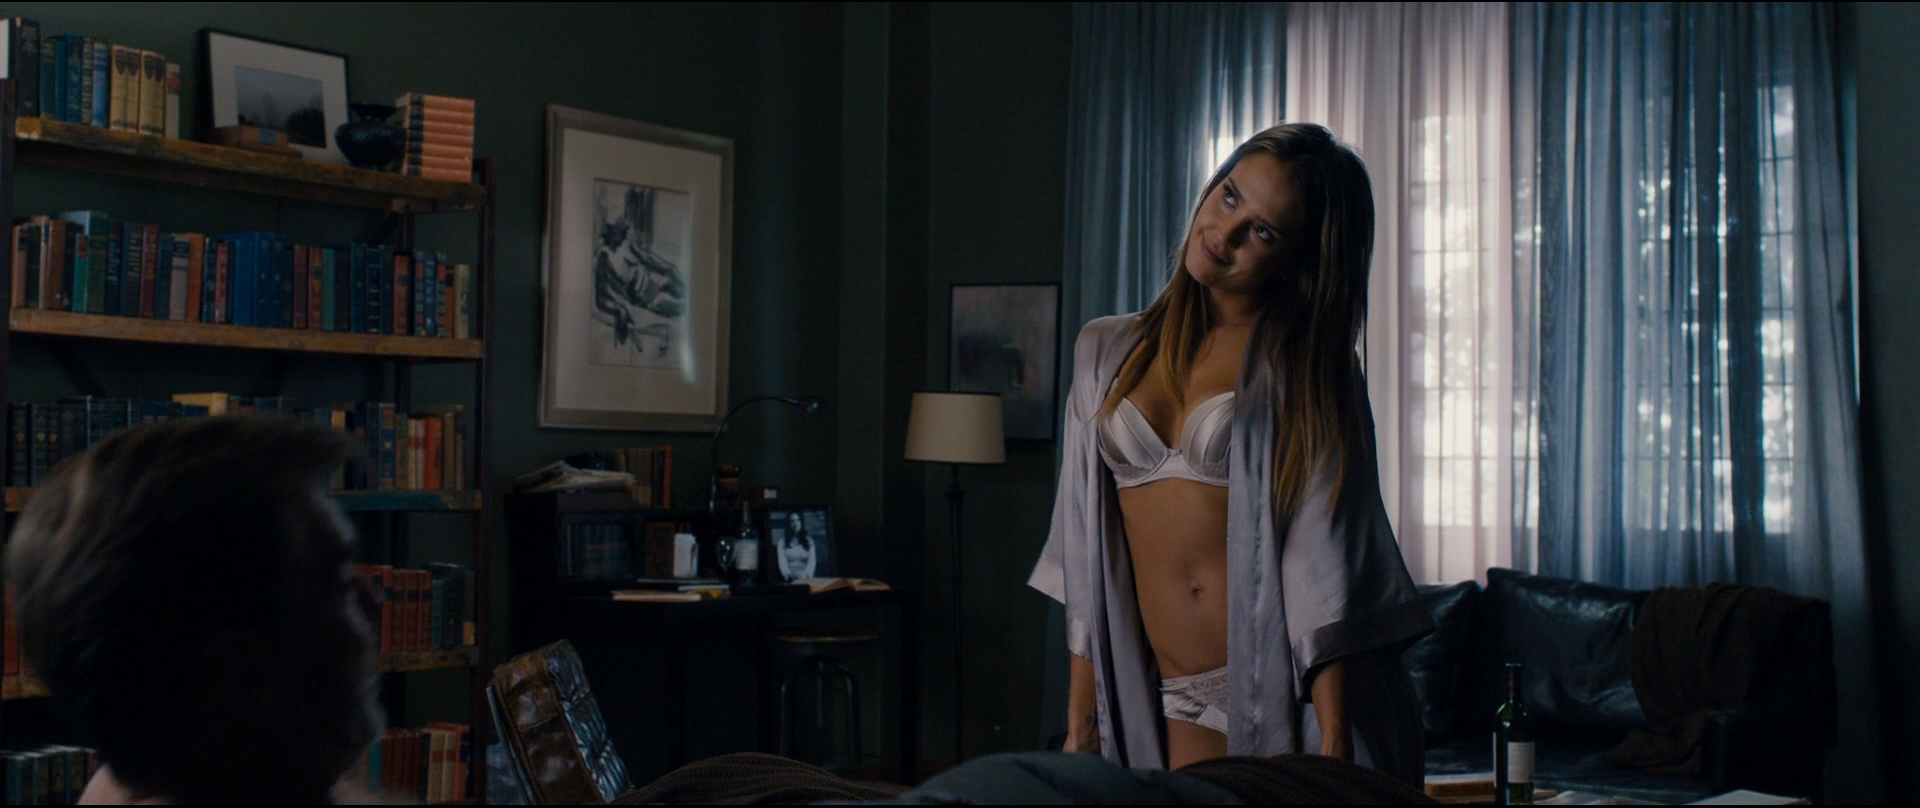 Salma Hayek nude butt Jessica Alba hot bikini and Lindsey Sporrer nude butt - Some Kind Of Beautiful (2014) hd1080p BluRay (11)